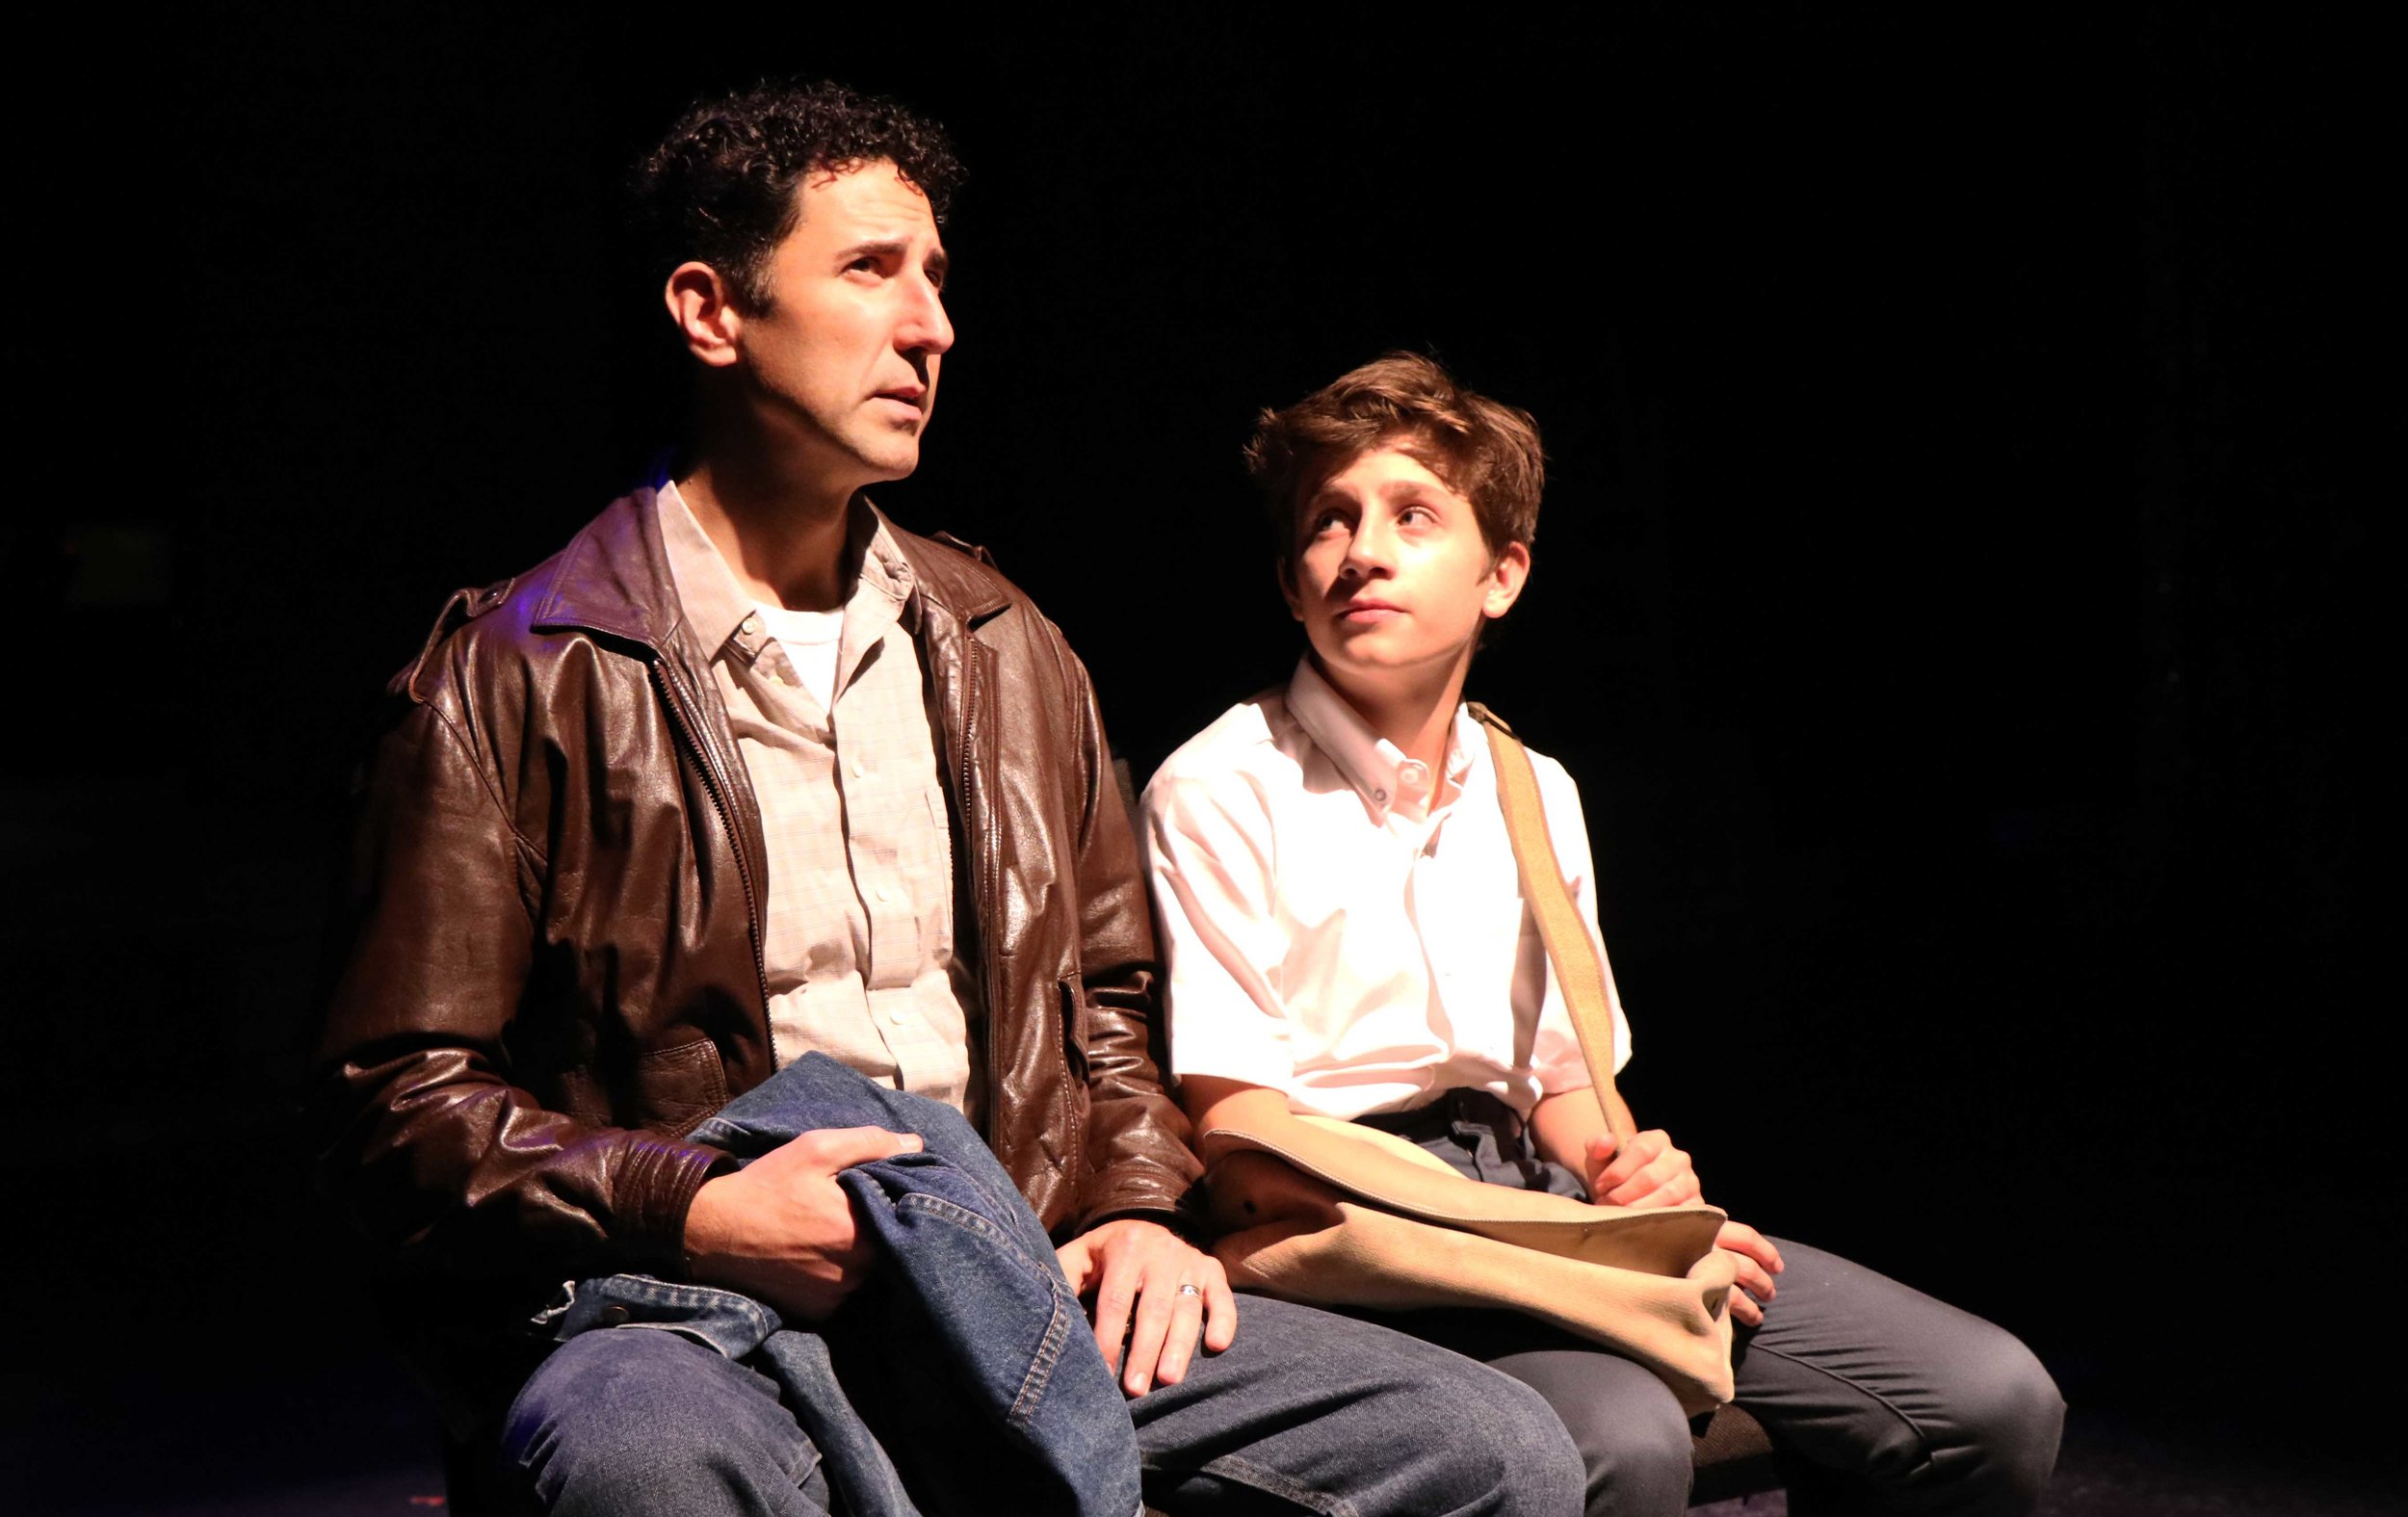 """Sean Fortunato as """"Dad"""" and Lincoln Seymour as """"Billy Elliot"""" in Porchlight Music Theatre's """"Billy Elliot the Musical."""" Photo by Austin Packard"""